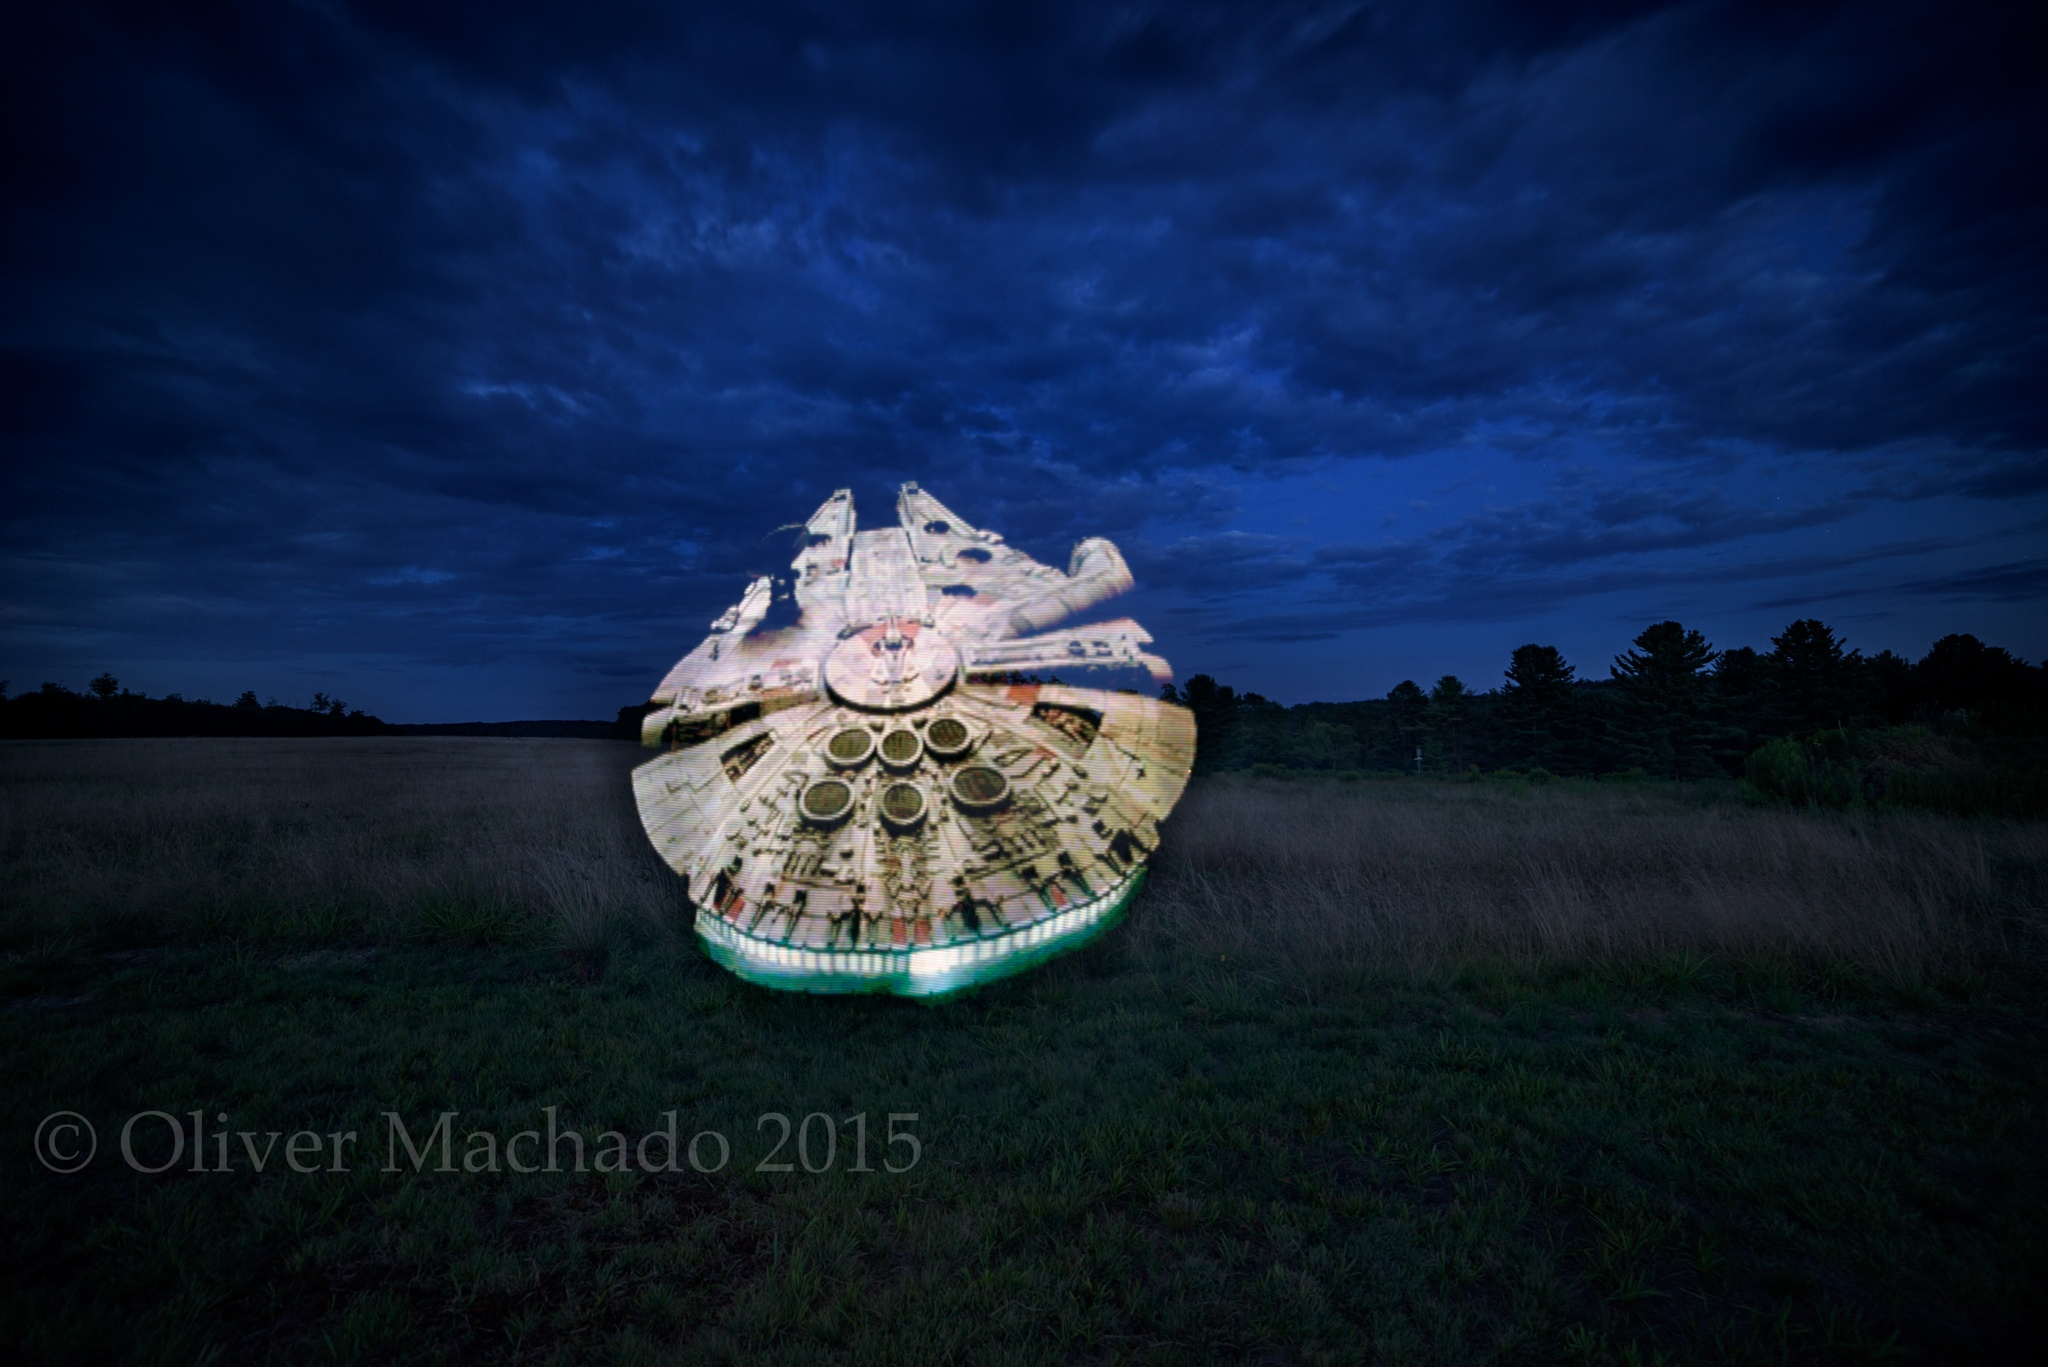 Light Painting by Oliver Machado